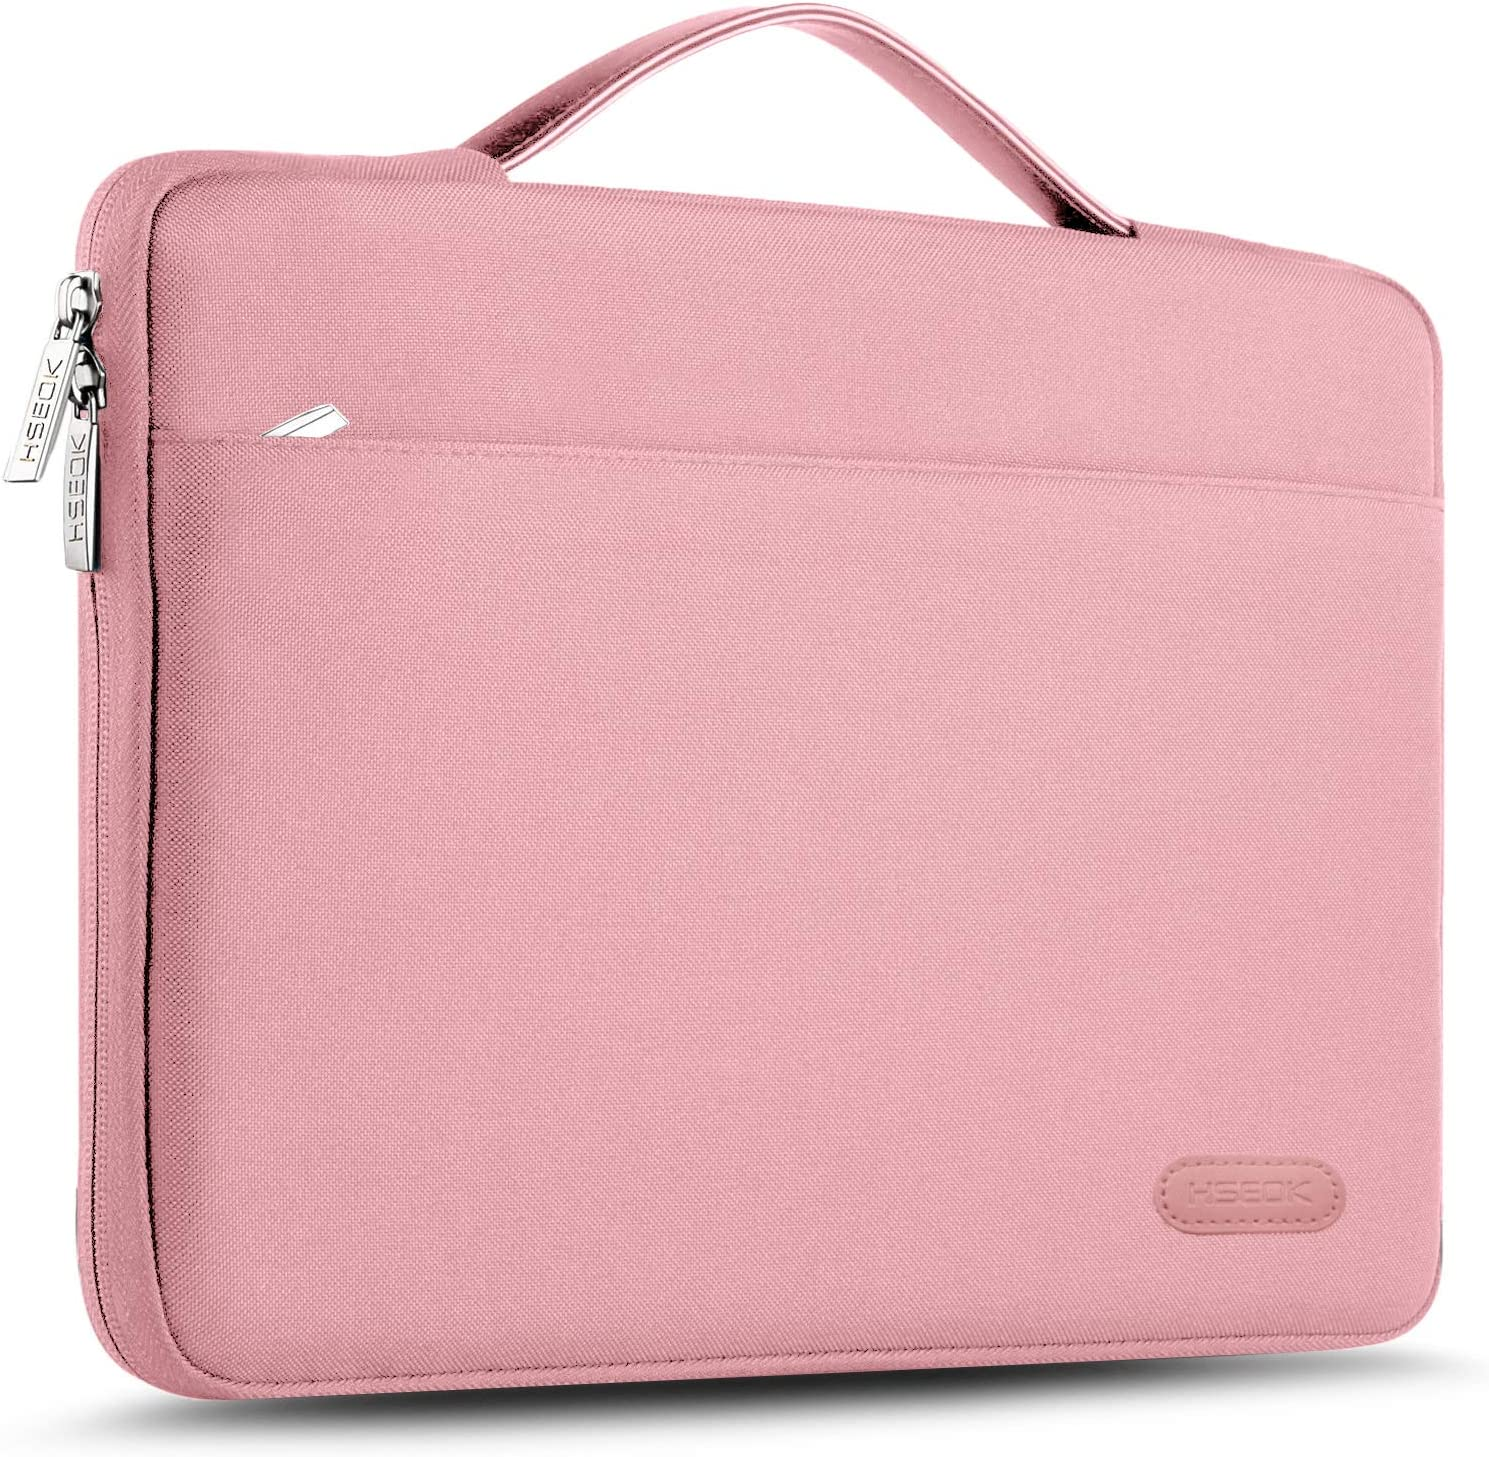 "Hseok Laptop Sleeve 13-13.5 Inch Case Briefcase, Compatible All Model of 13.3 Inch MacBook Air/Pro, XPS 13, Surface Book 13.5"" Spill-Resistant Handbag for Most Popular 13""-13.5"" Notebooks, Pink"